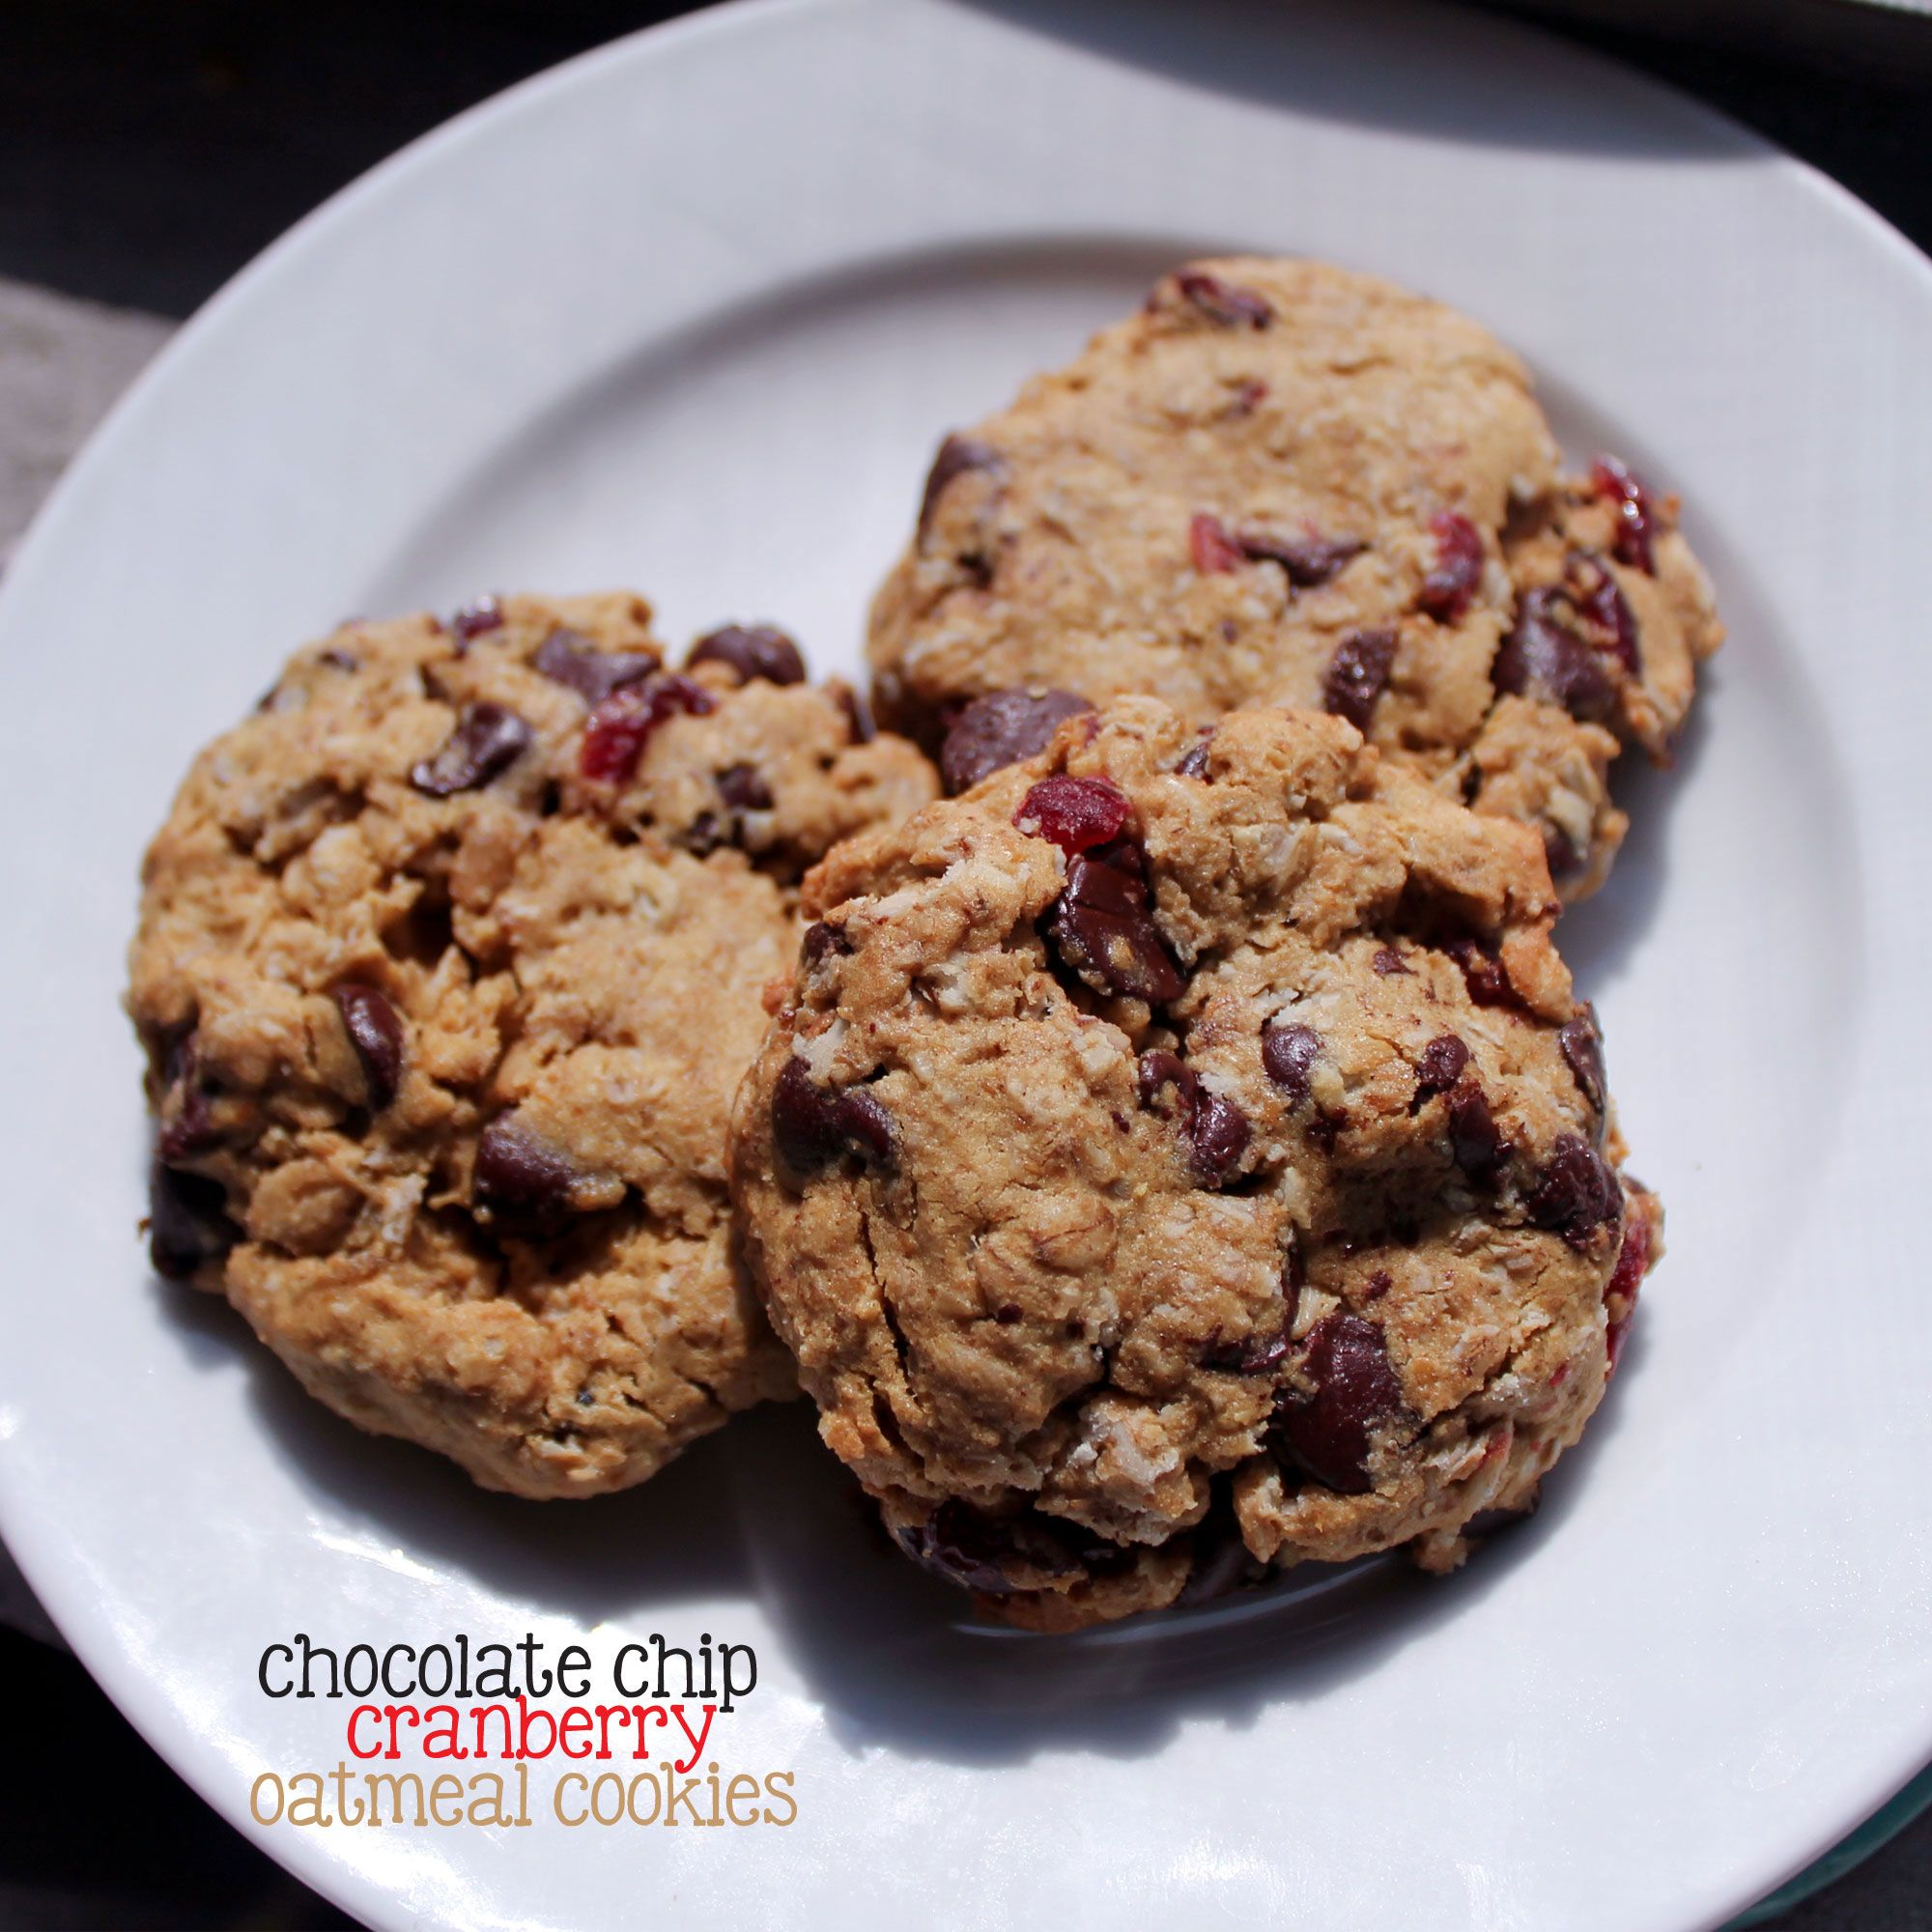 Chocolate chip and cranberry oatmeal cookies certified